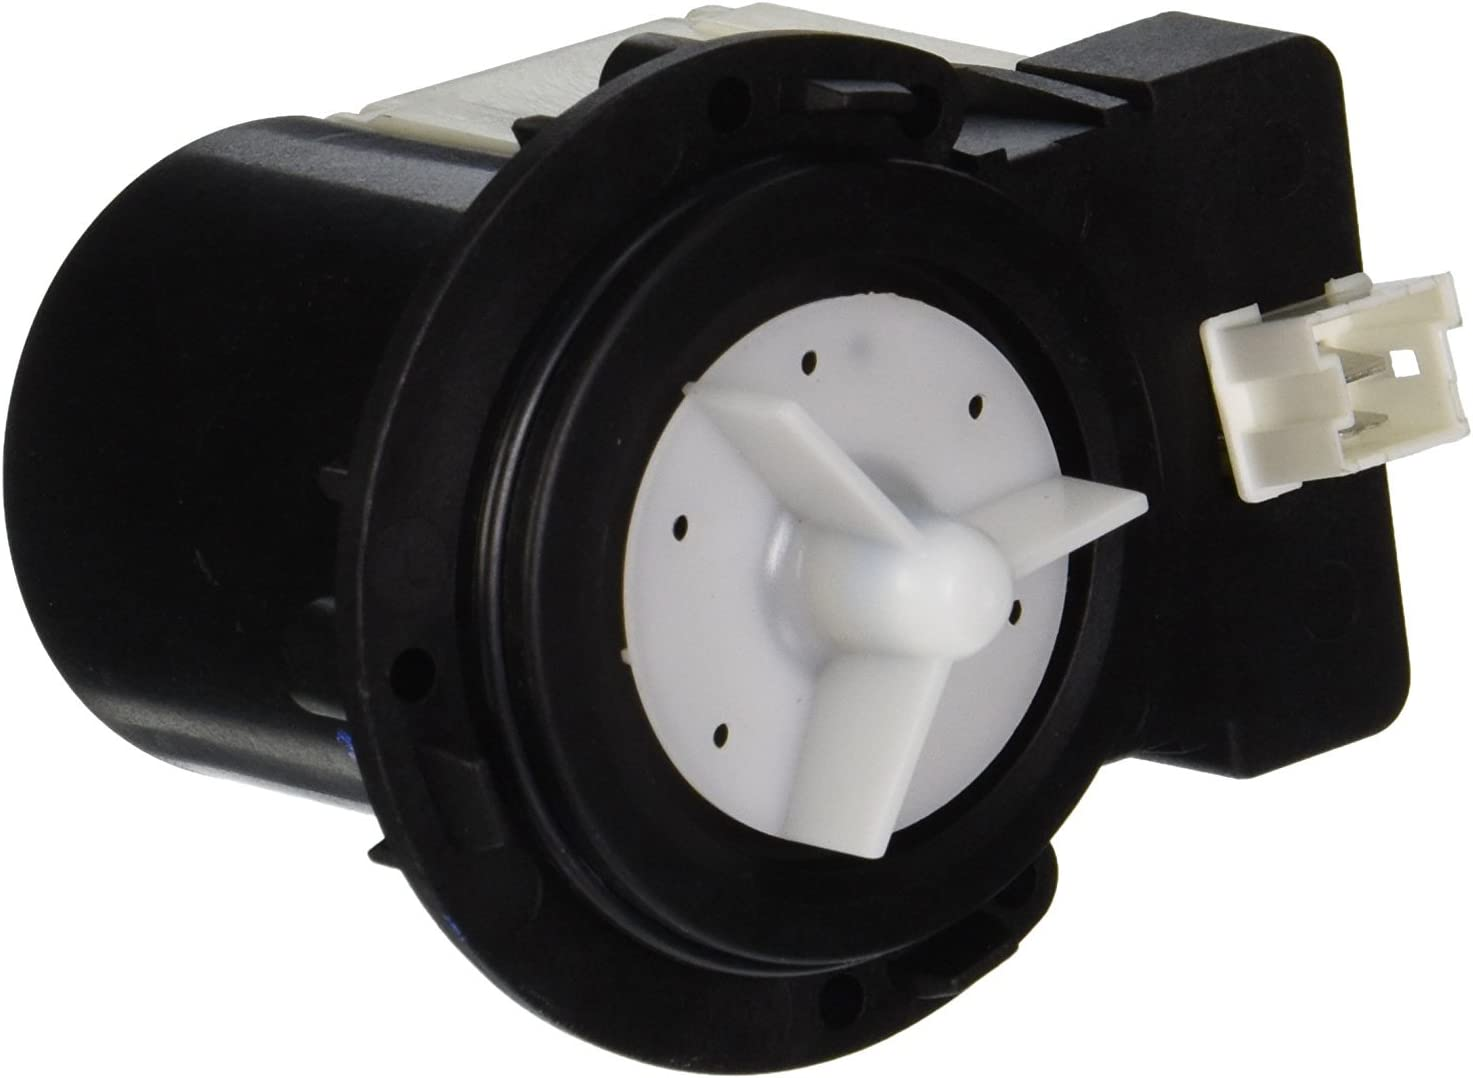 Enterpark Only Factory Version Replacement Drain Pump Motor Assembly DC31-00054A by Enterpark